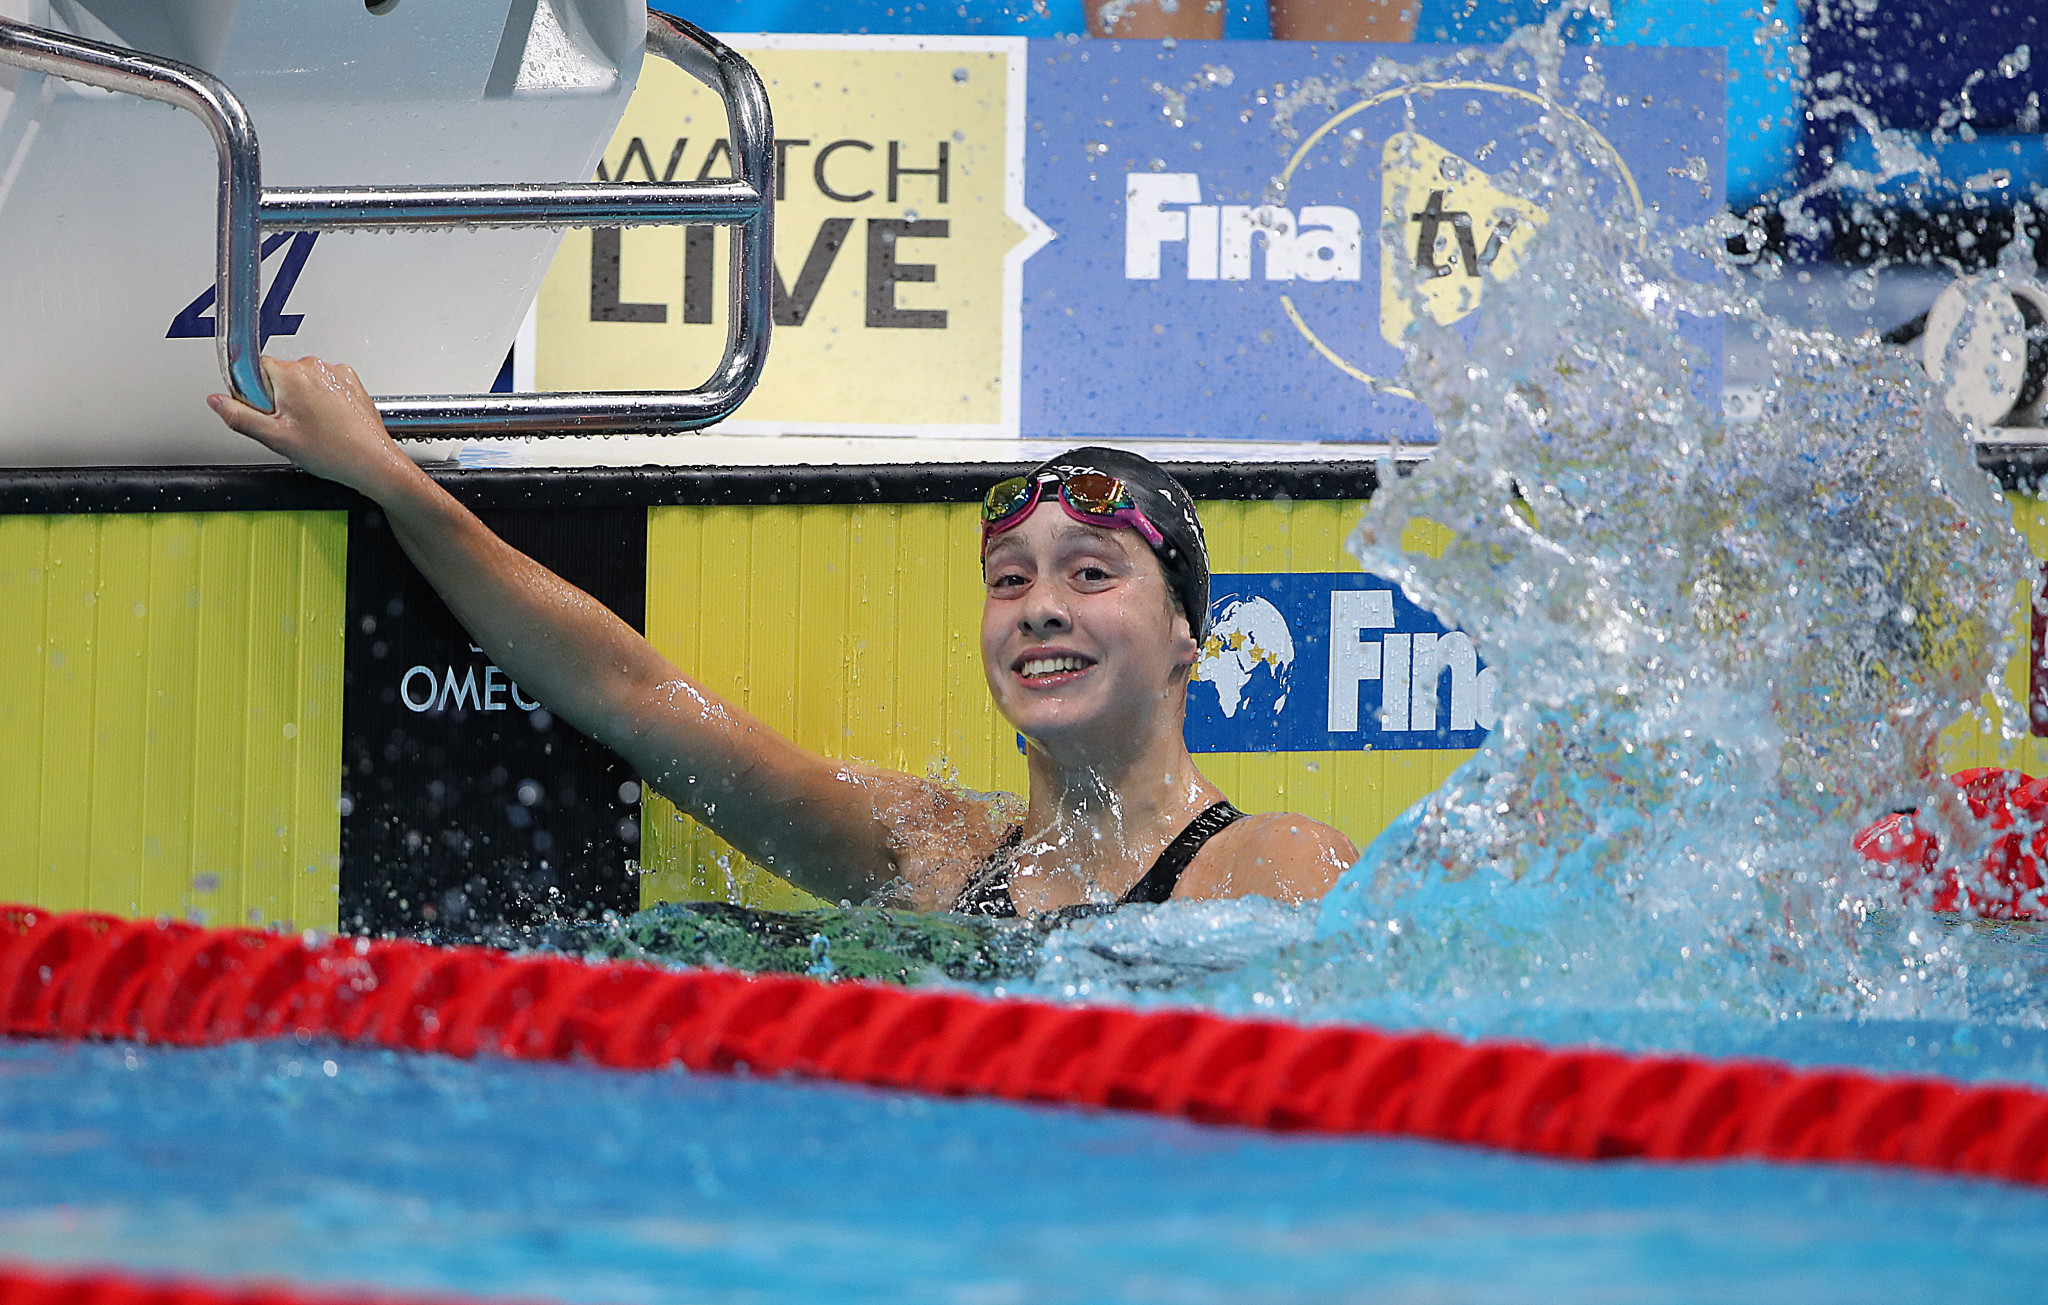 Ruiz Vazquez in record-breaking form on day one of FINA World Junior Championships